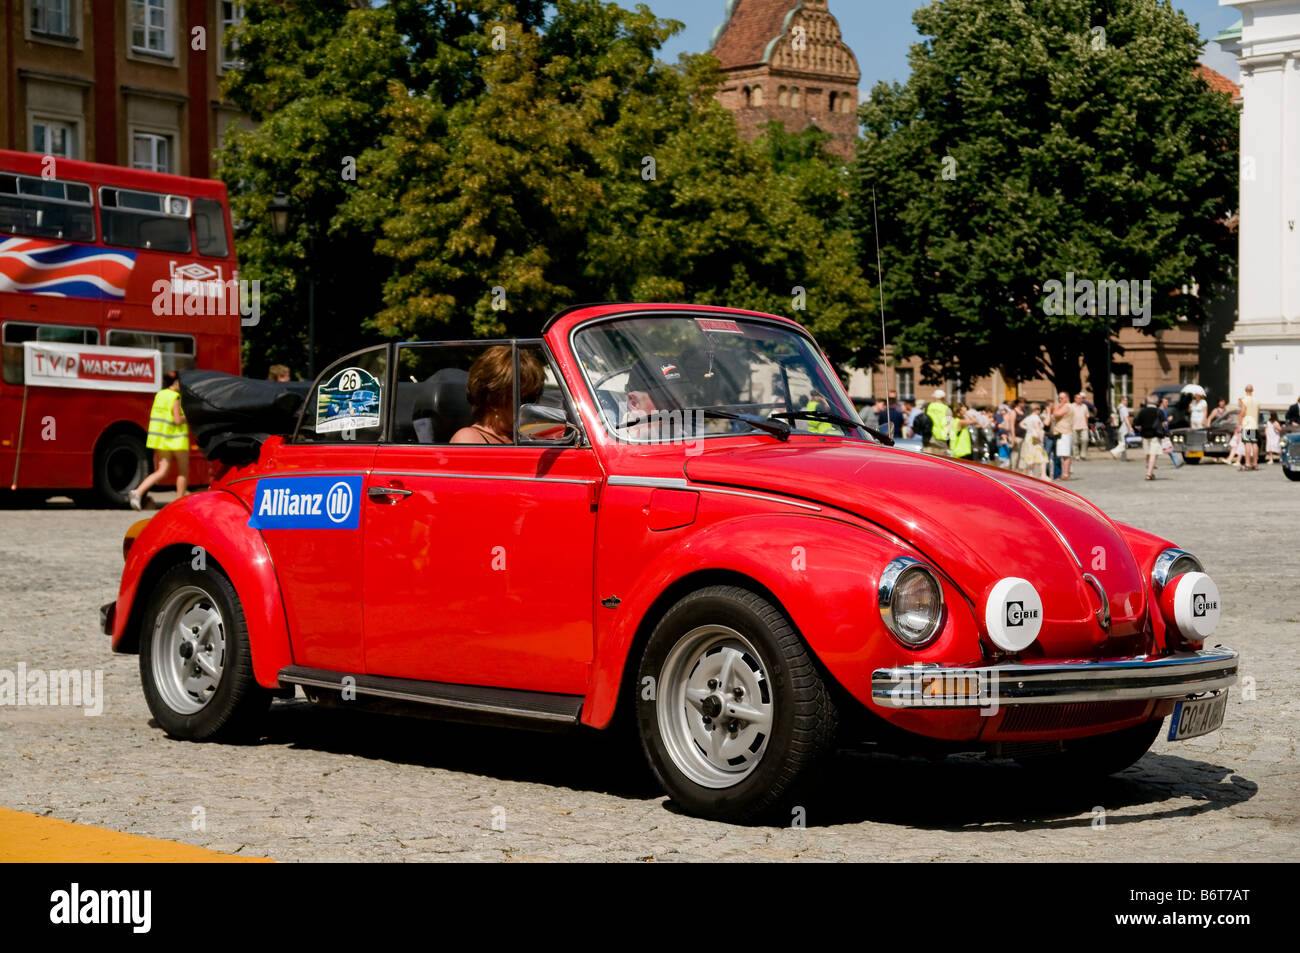 1978 Volkswagen Beetle 1303 LS Cabrio on Cars Competition during XXXIth Warsaw Antique Car Rally. July 7, 2008 in - Stock Image